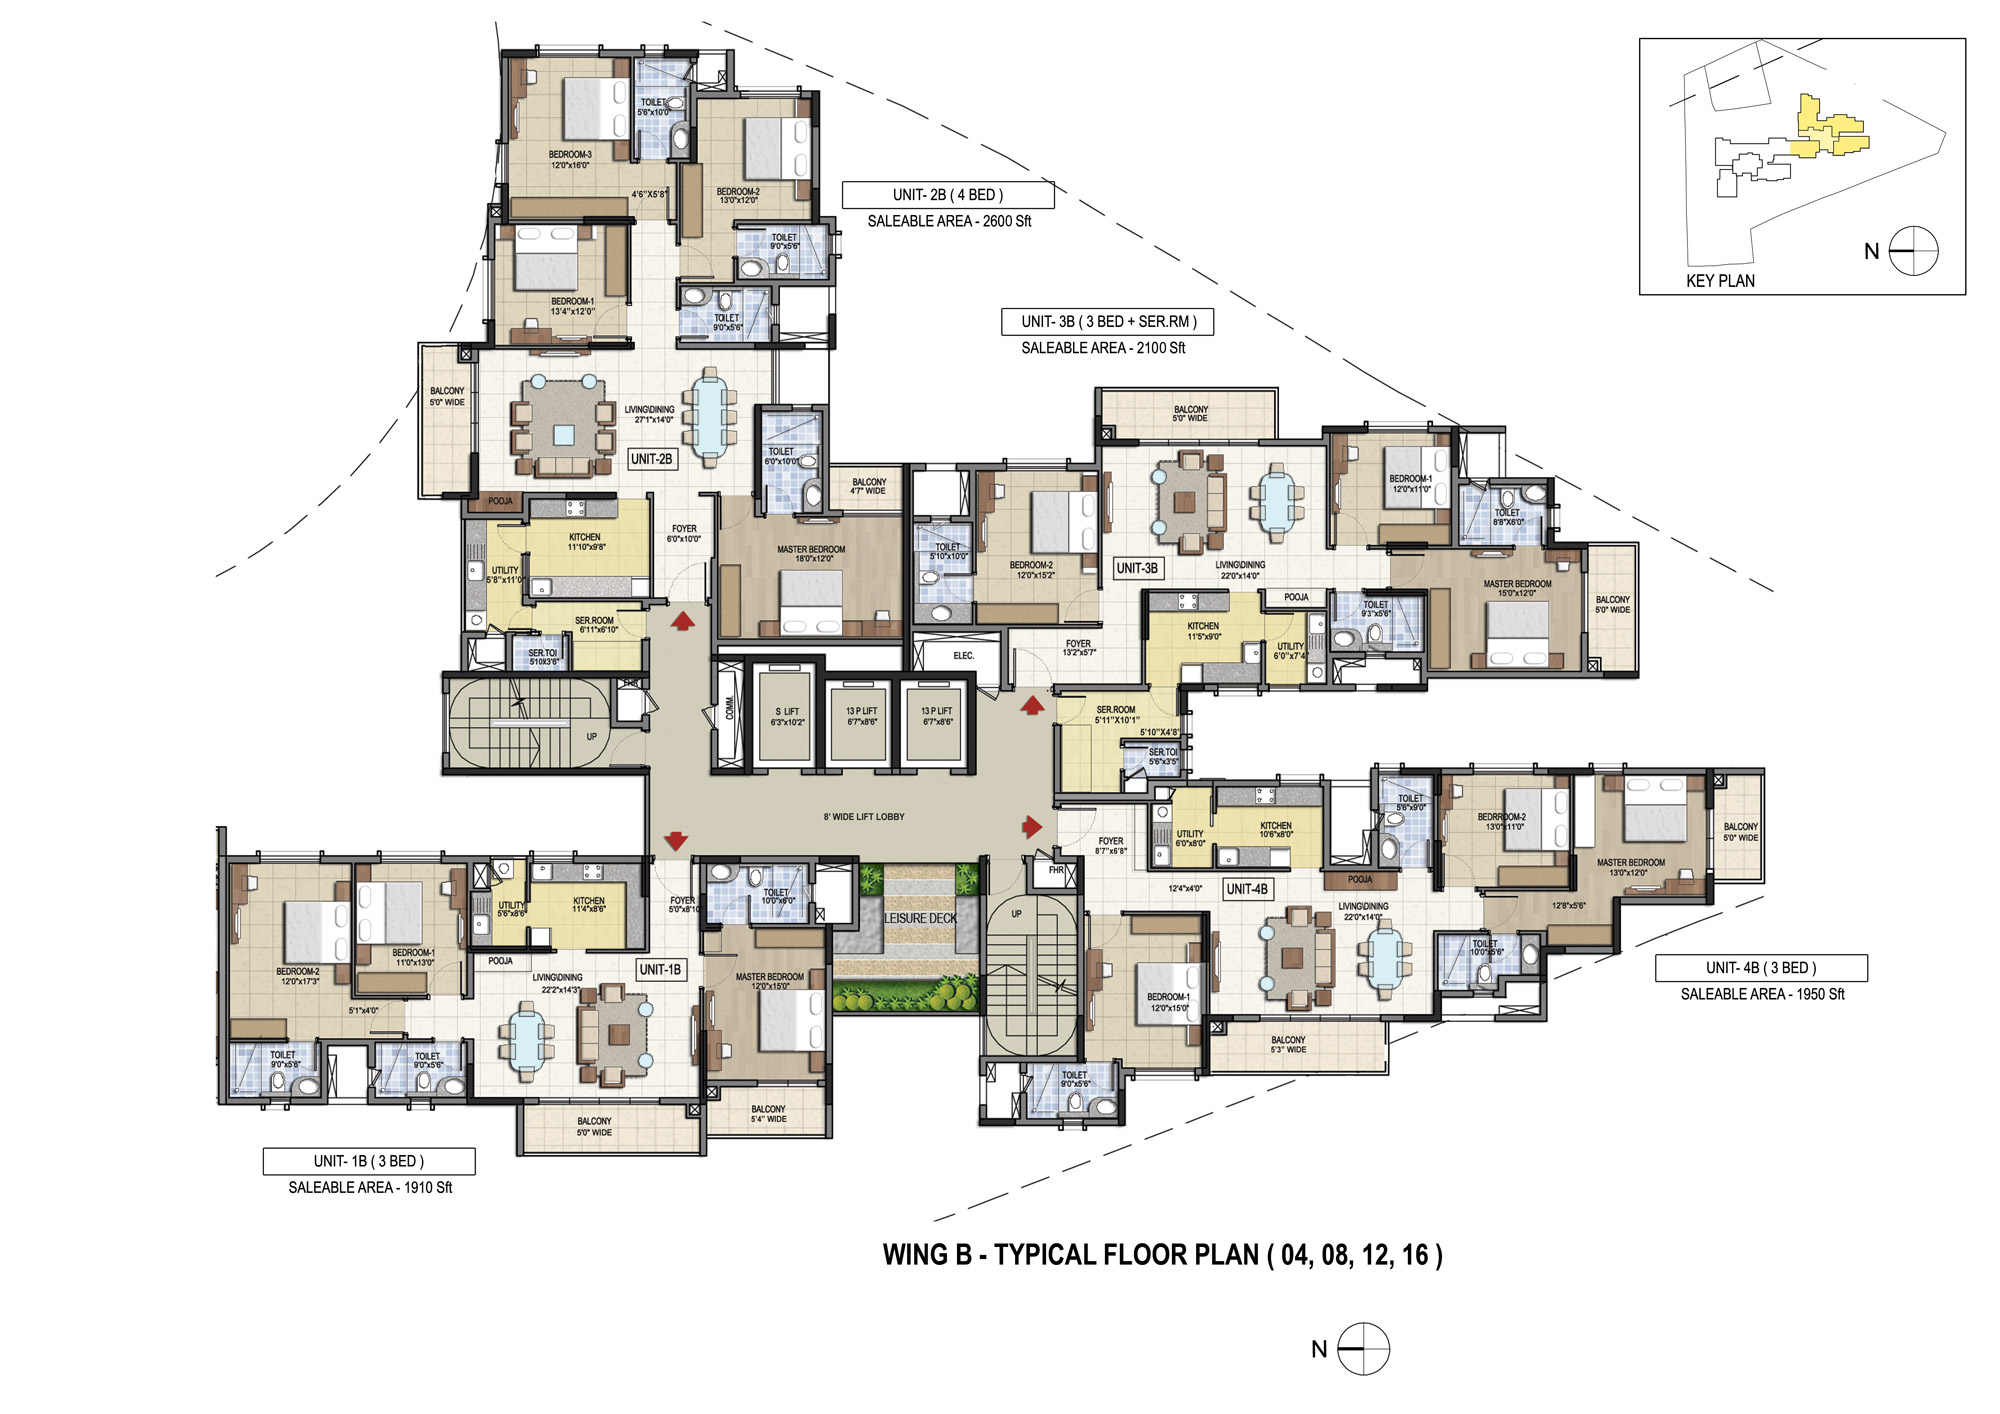 3 4 5 Bhk Premium Flats For Sale In Bangalore Aparna Elina Orion Bms Wiring Diagram Floor Plans